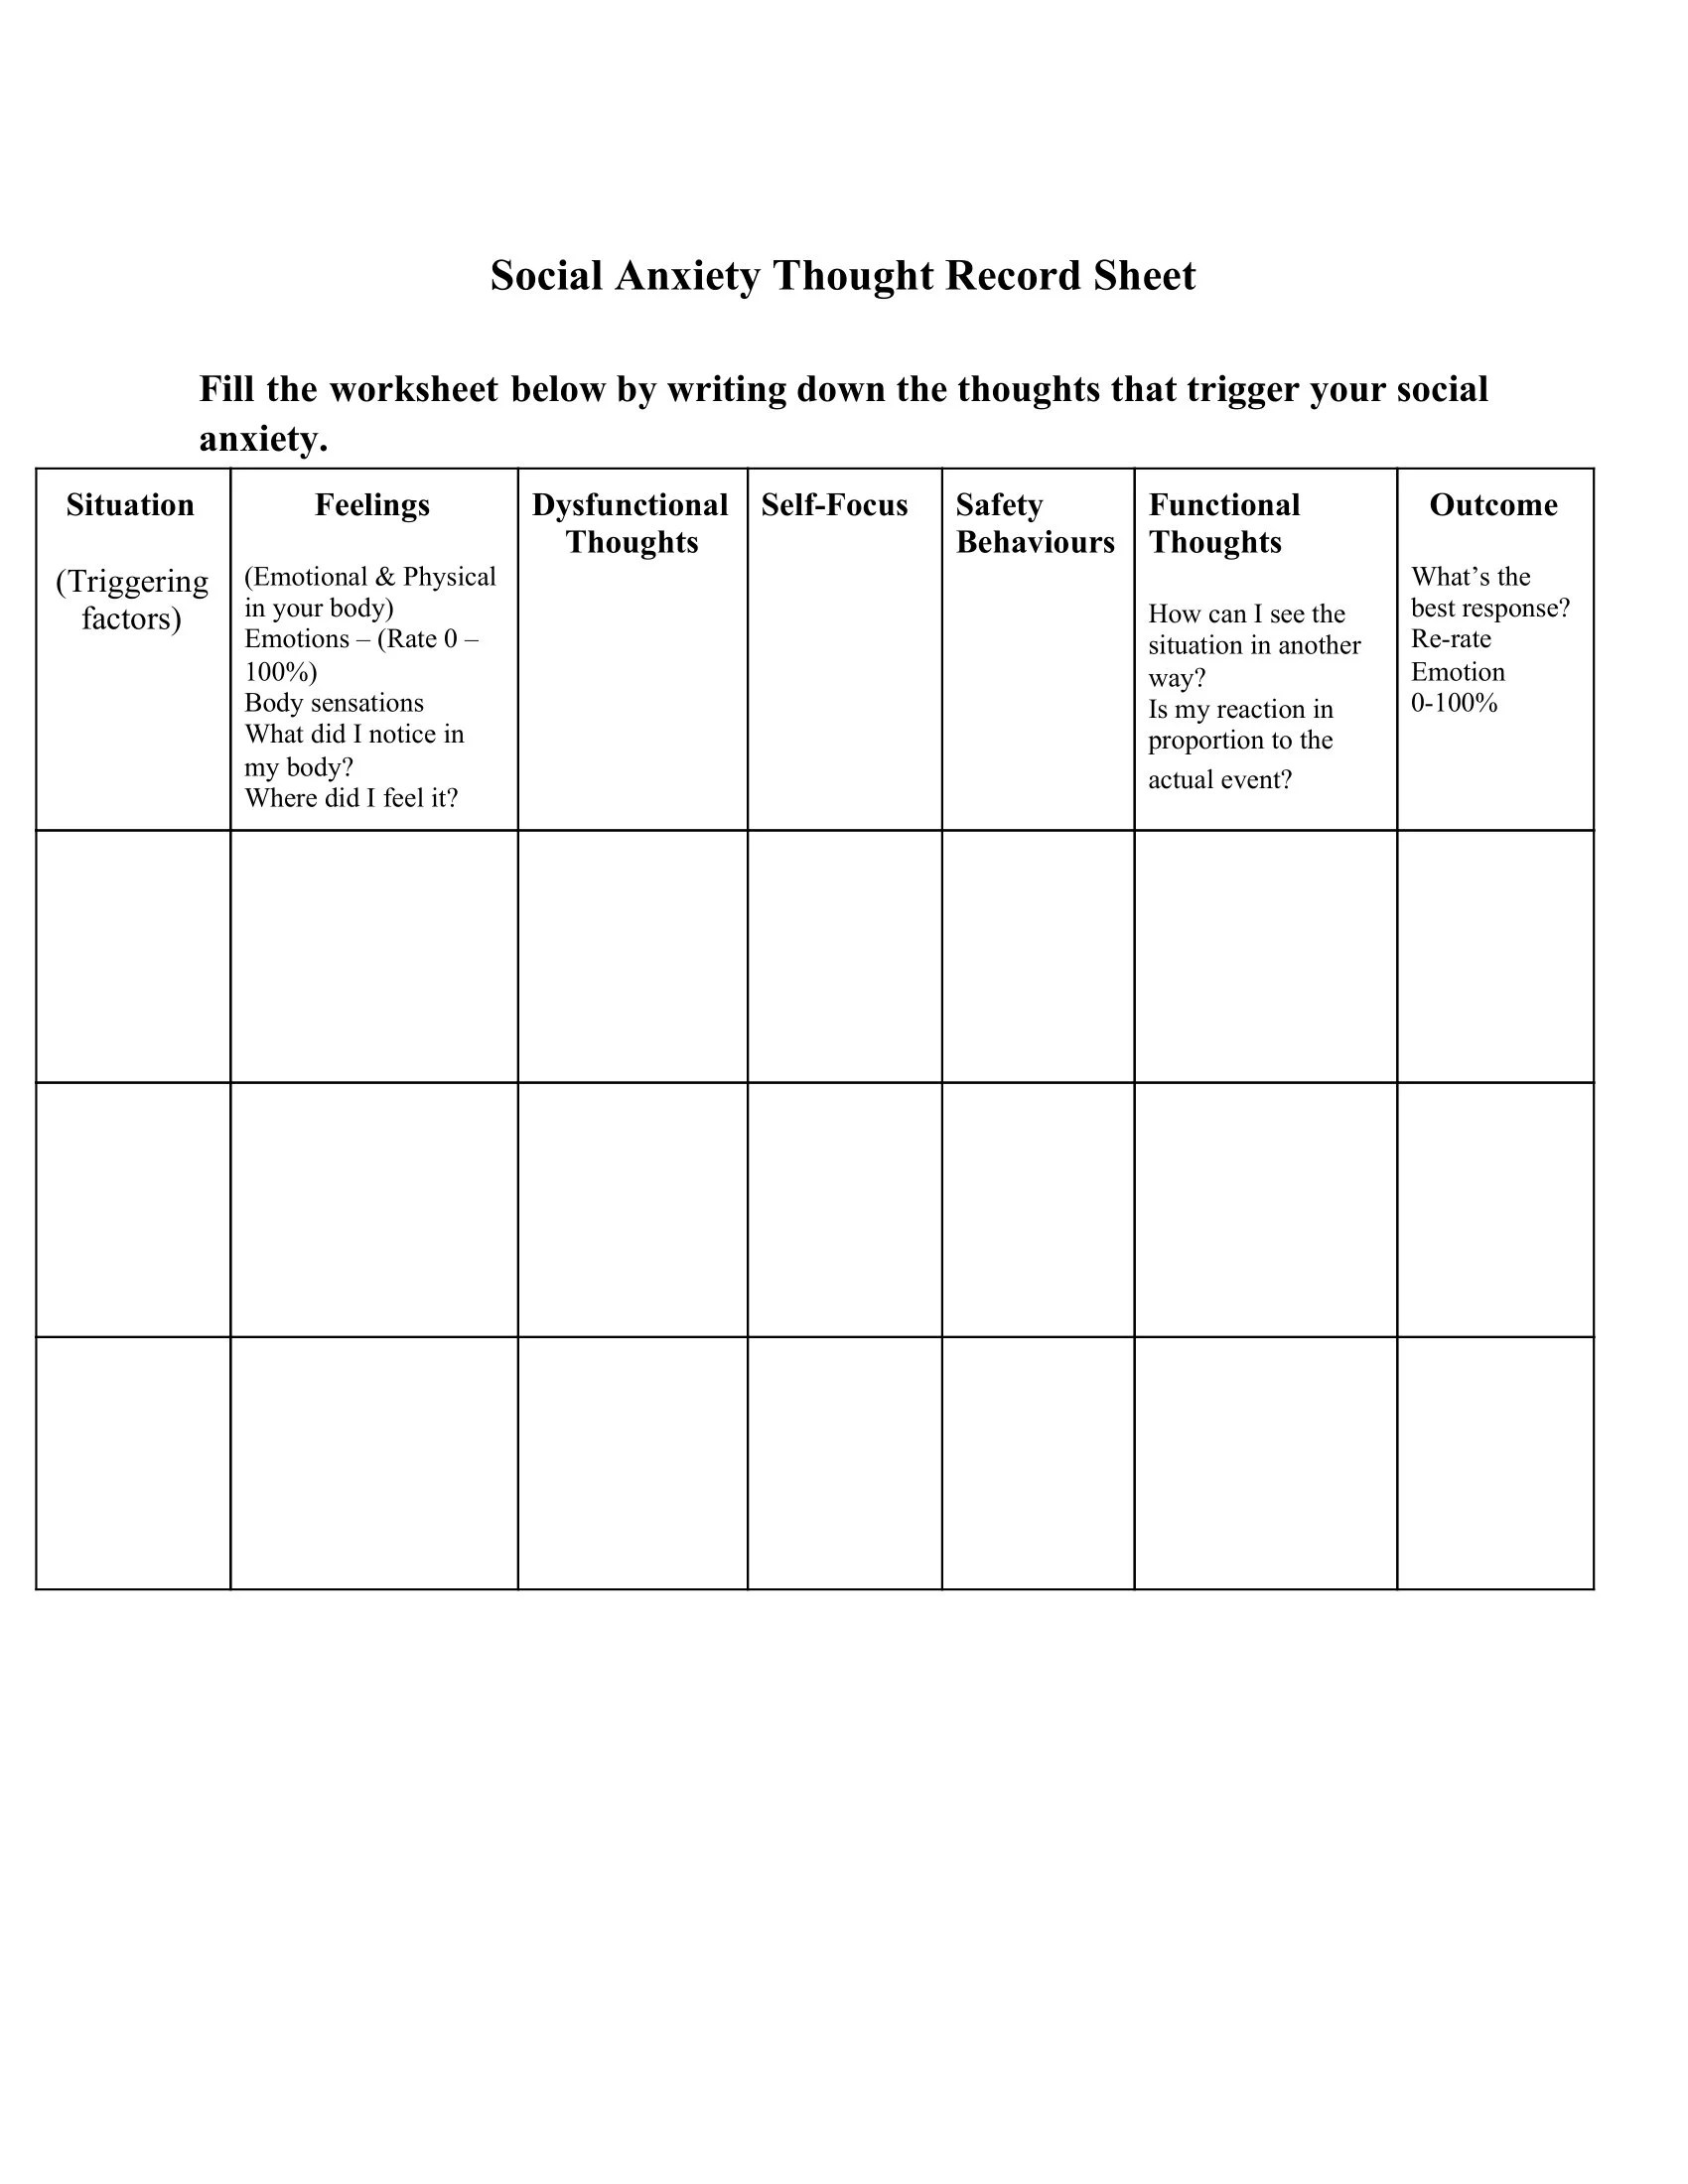 Social Anxiety Thought Record Sheet